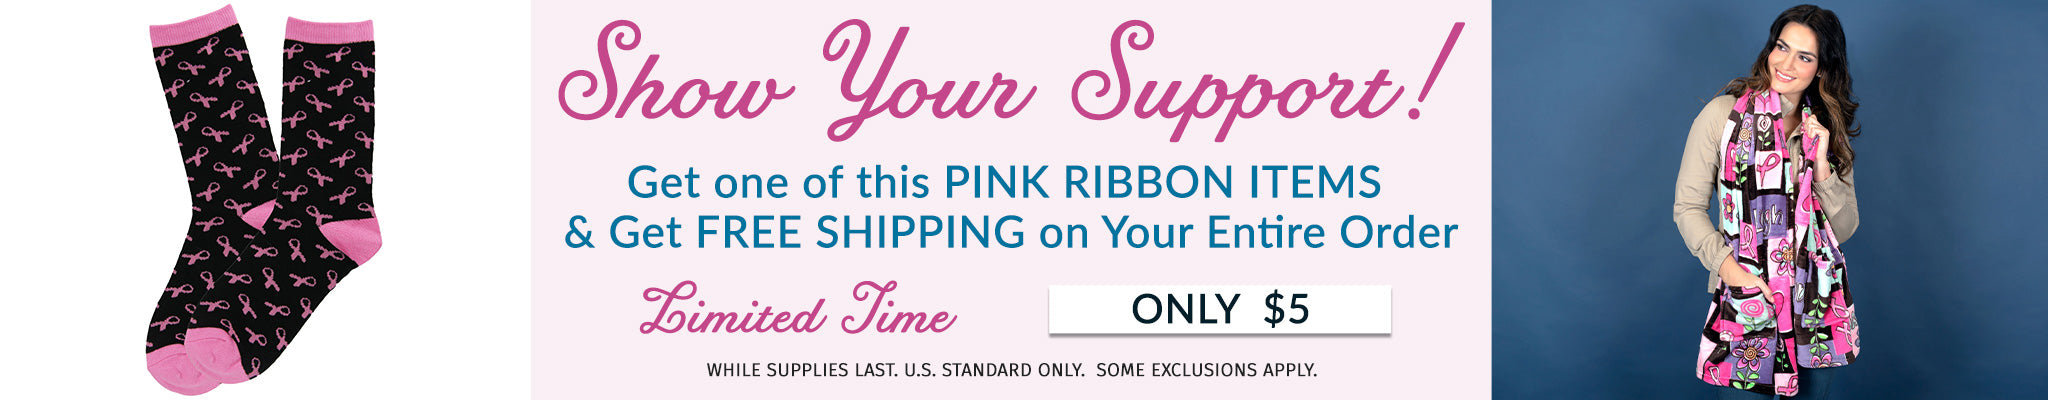 Show Your Support!   Get one of this Pink Ribbon items & Get Free Shipping on Your Entire Order